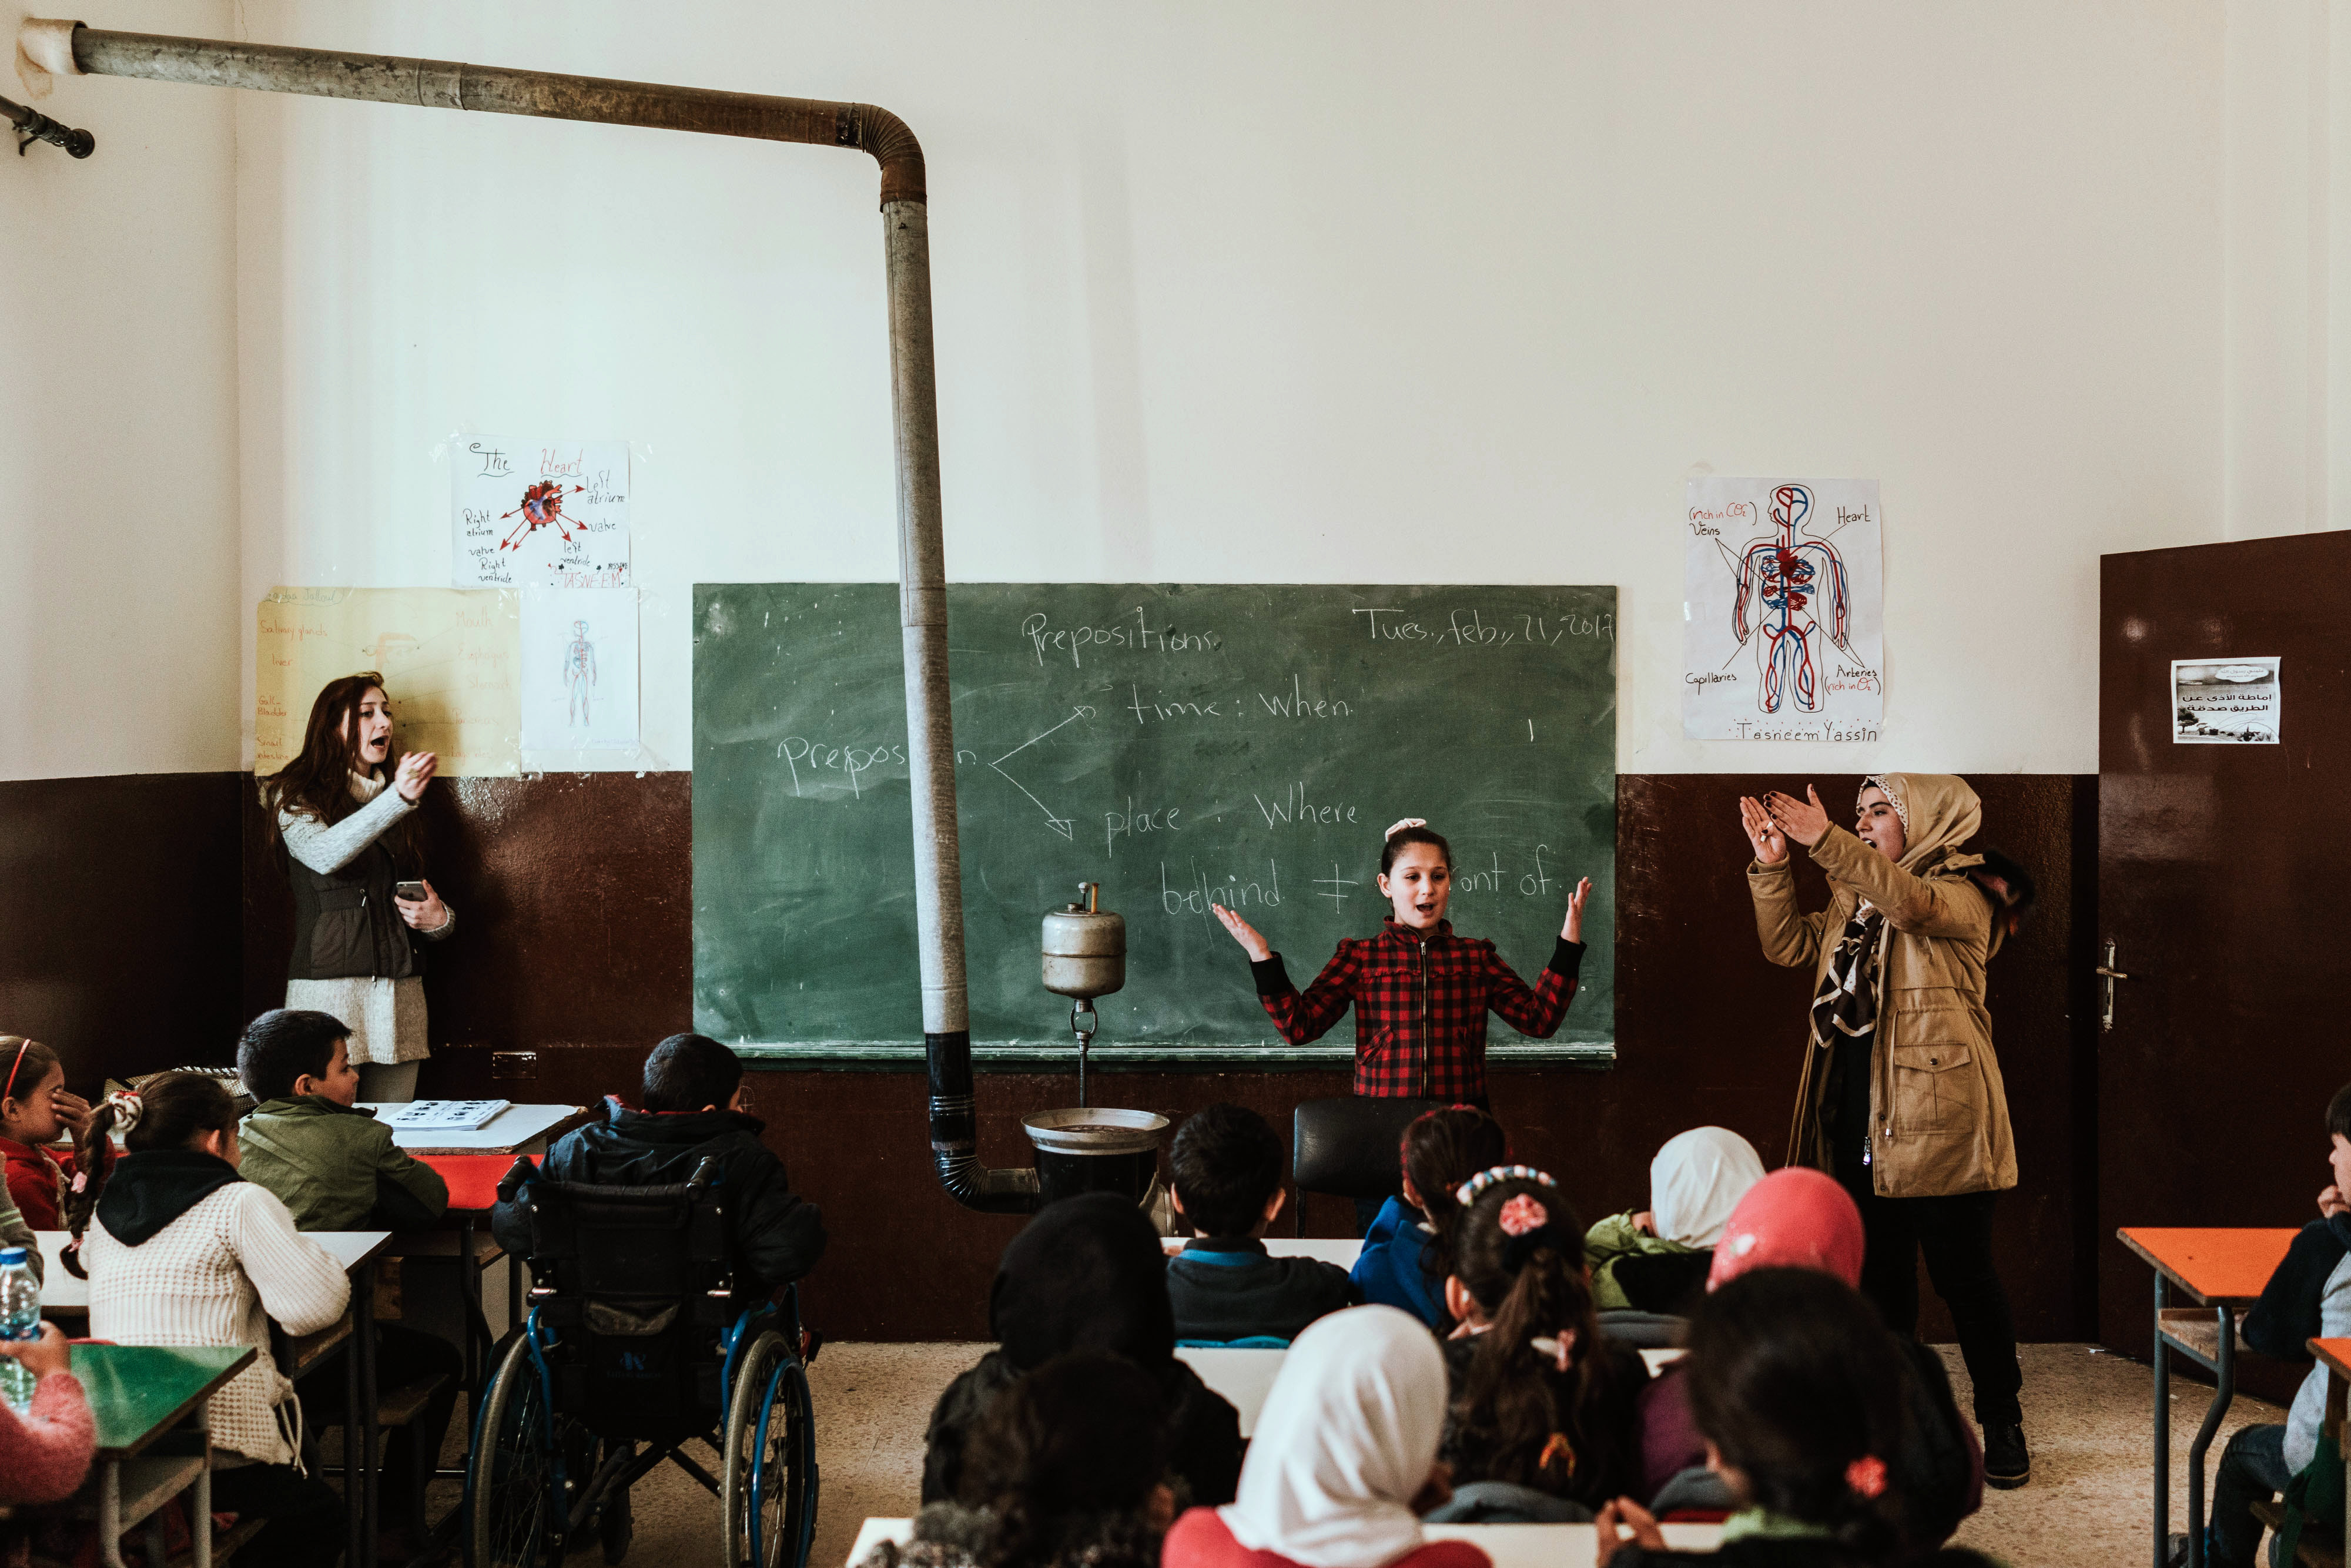 Syrian children in rehabilitated school in Lebanon